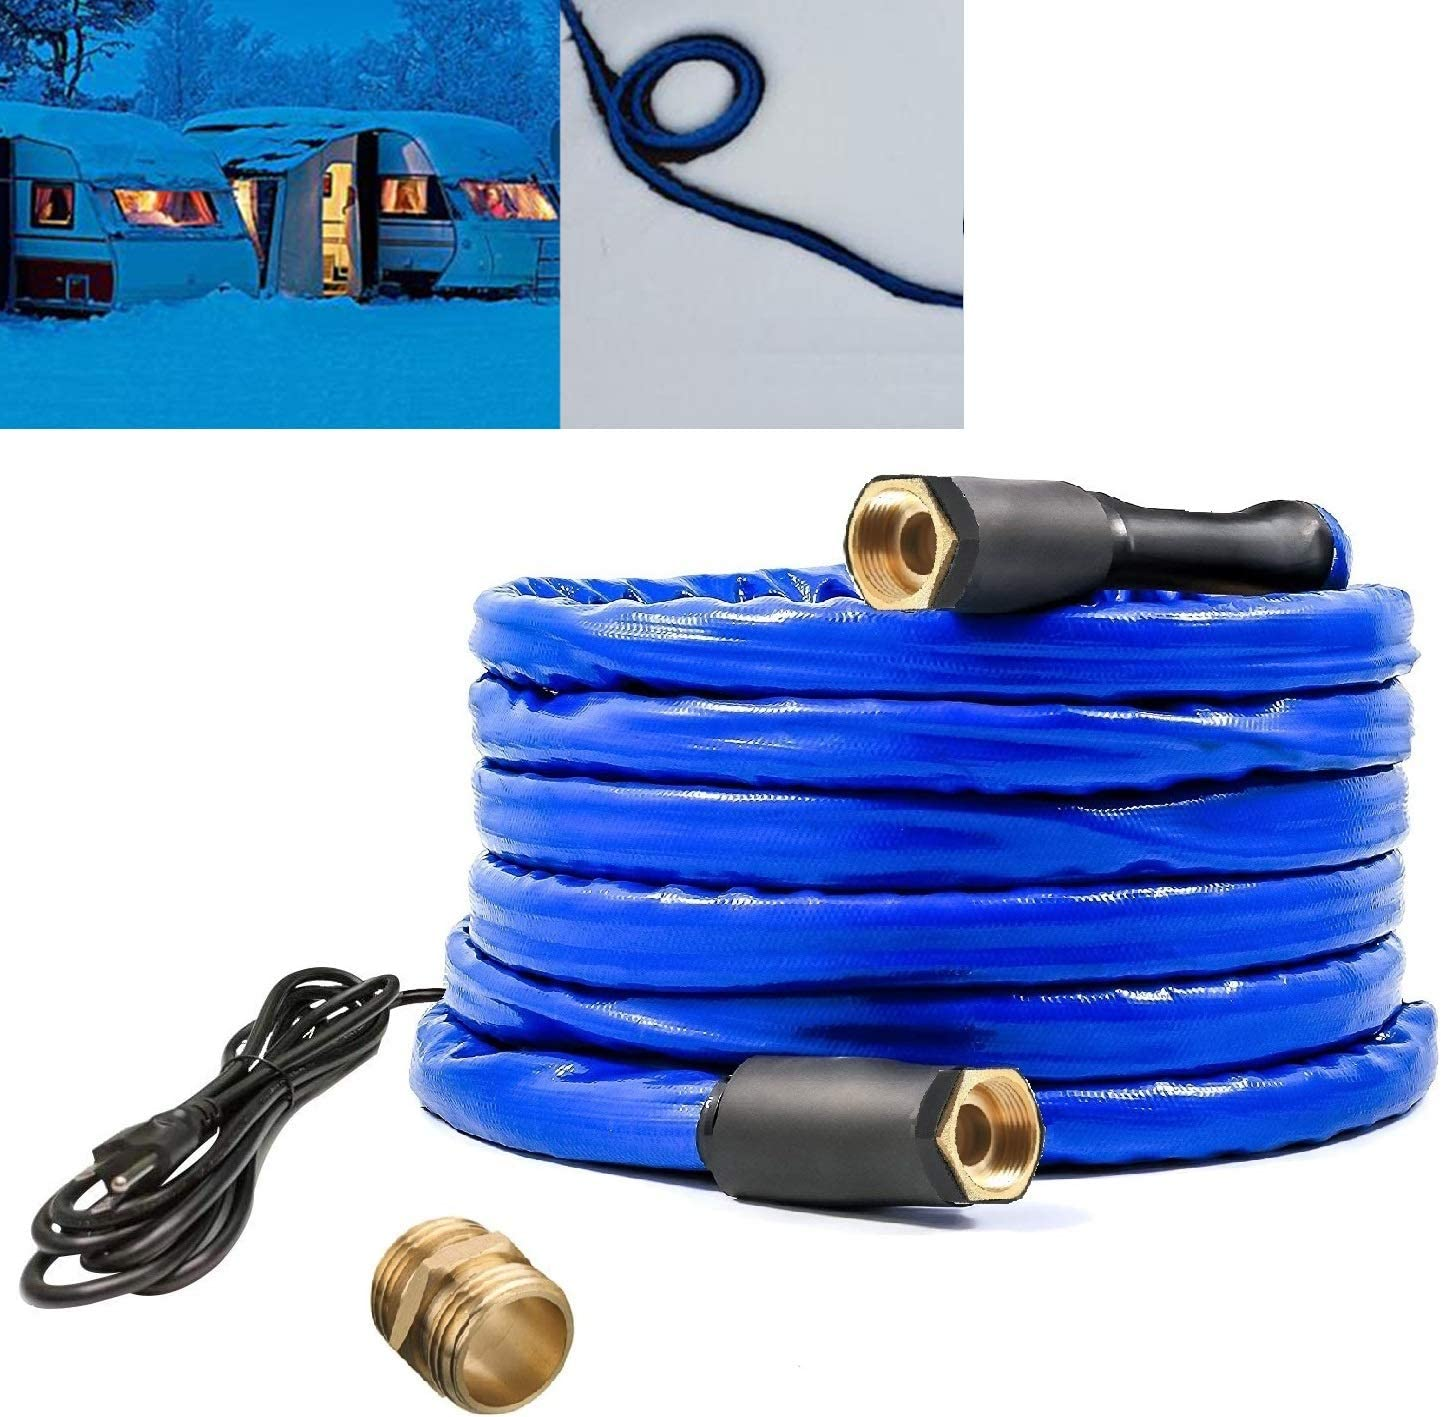 "H&G lifestyles Heated Water Hose for Rv 1/2"" Inner Diameter Self-Regulating 25ft 200W Blue"